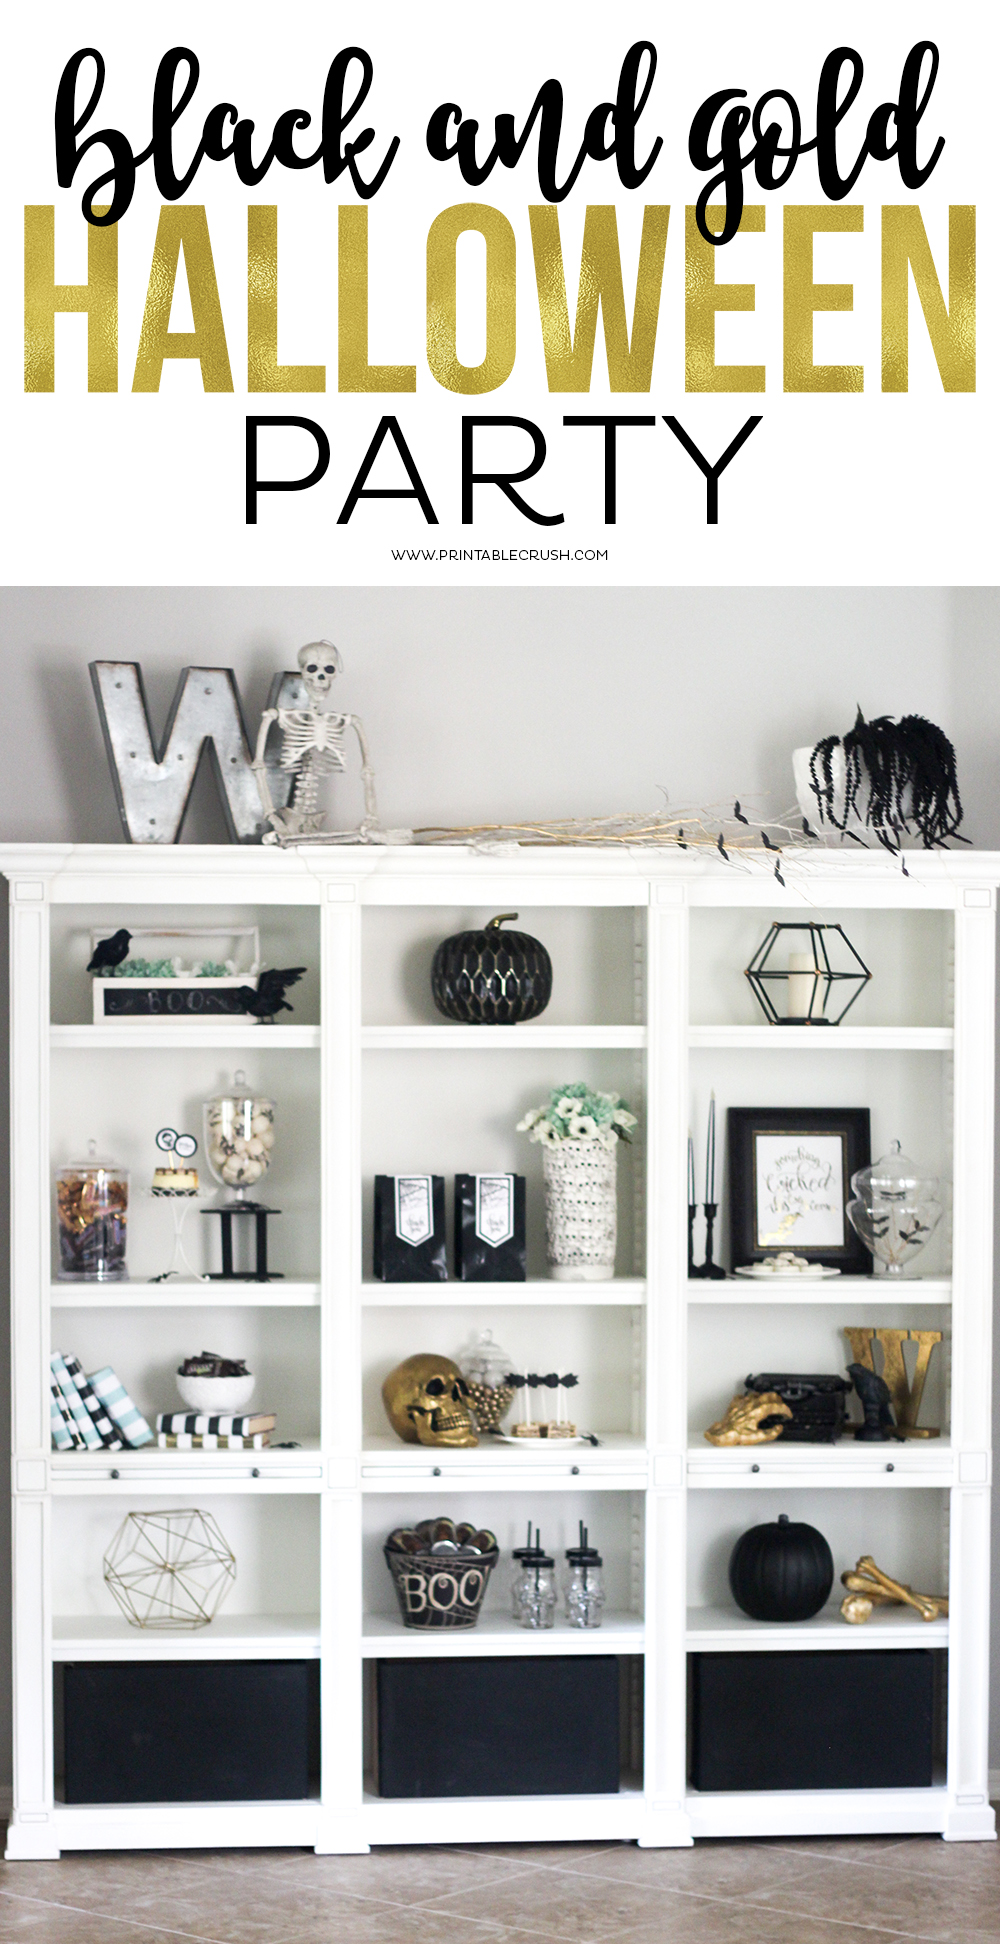 Black and Gold Halloween Party Ideas - Printable Crush